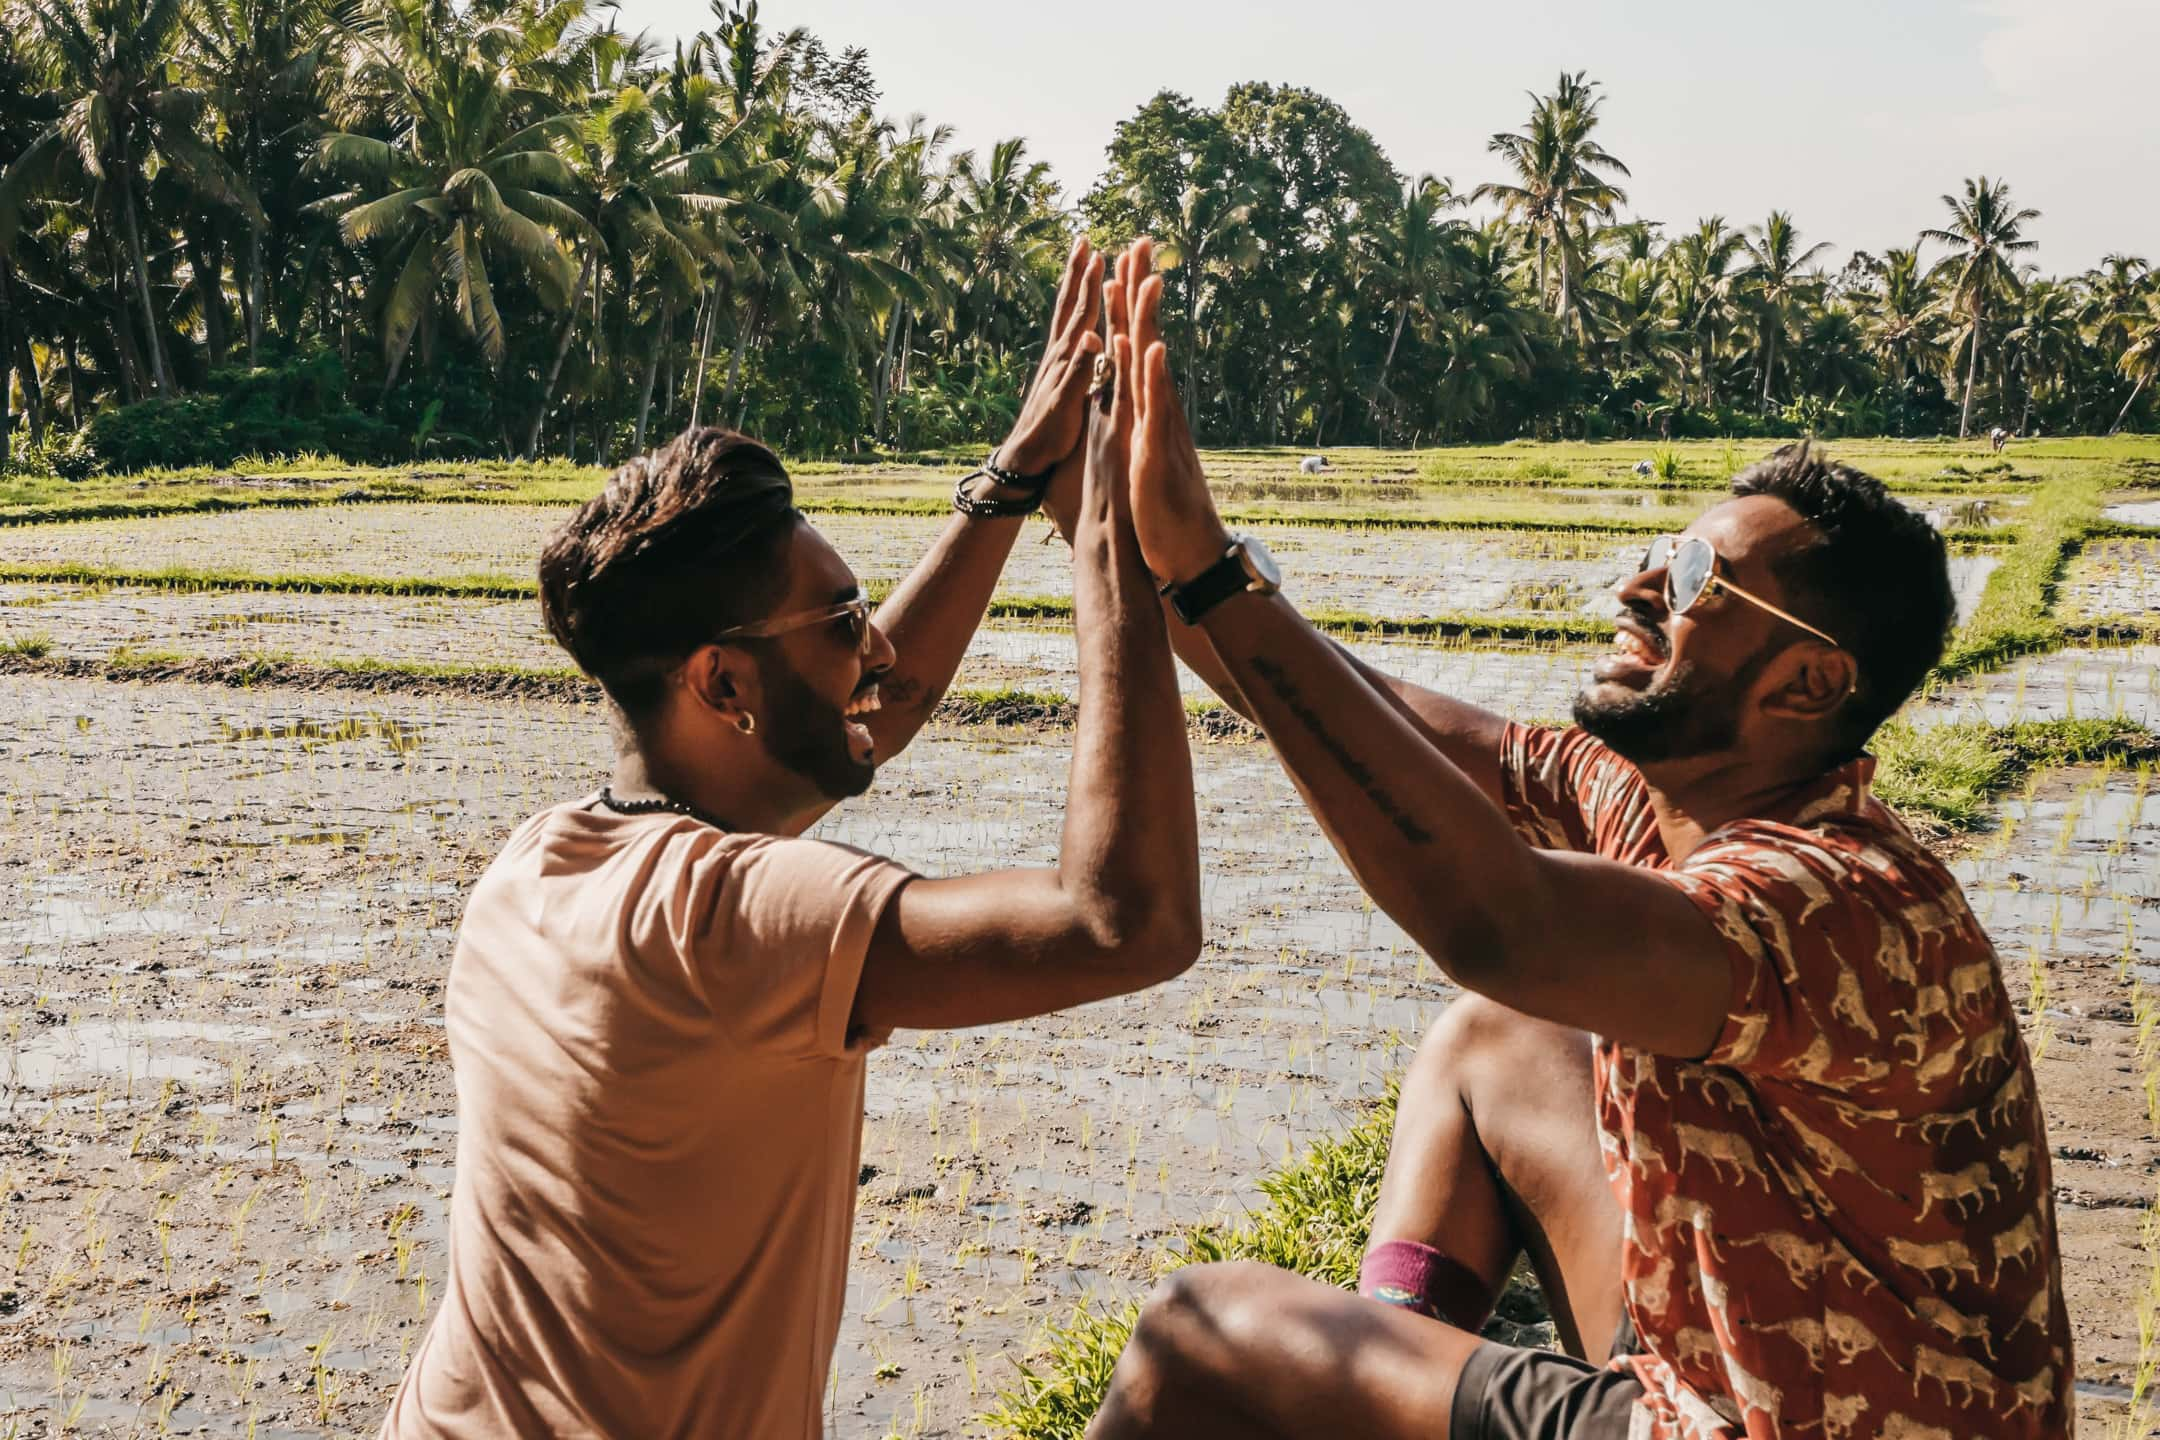 Couple photo shoot. two men having fun and giving high five in the rice fields